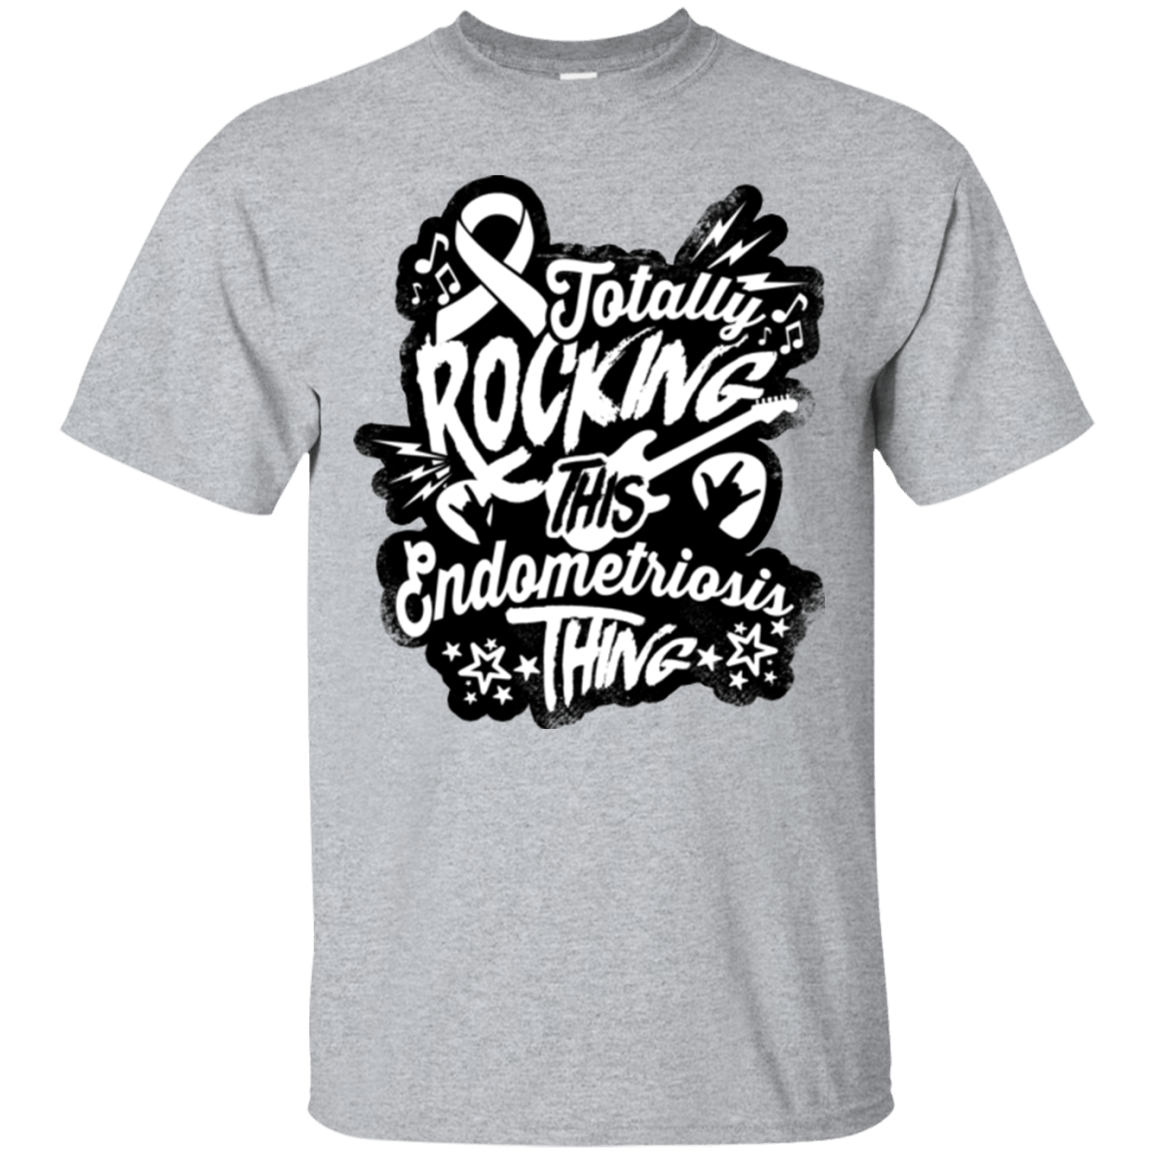 Rocking Endometriosis Unisex Shirt - The Unchargeables